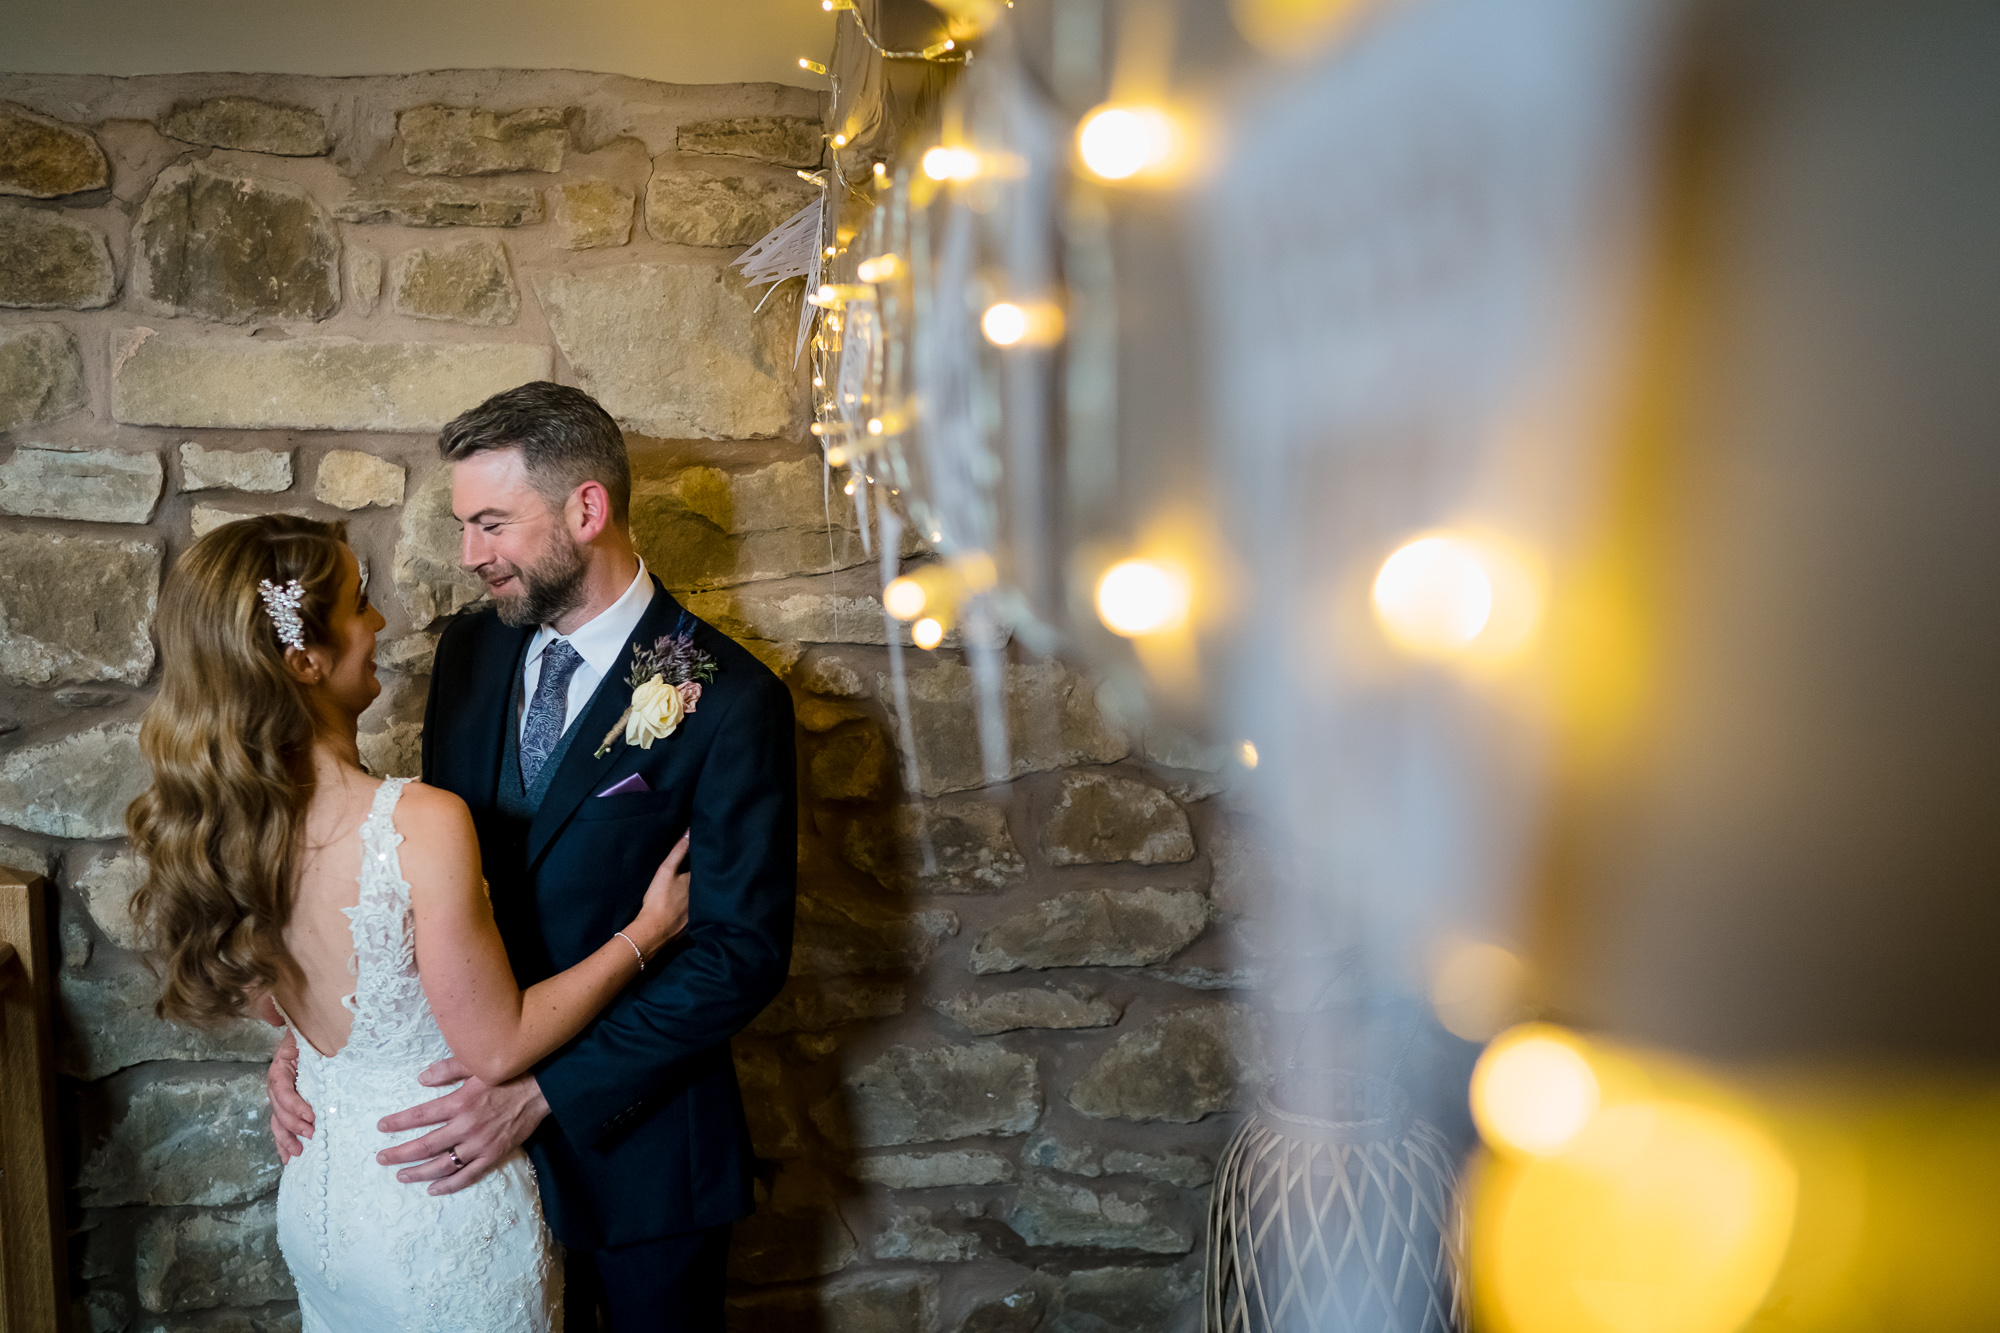 Tower Hill BArn Wedding Photographer based in north west england (31 of 35).jpg